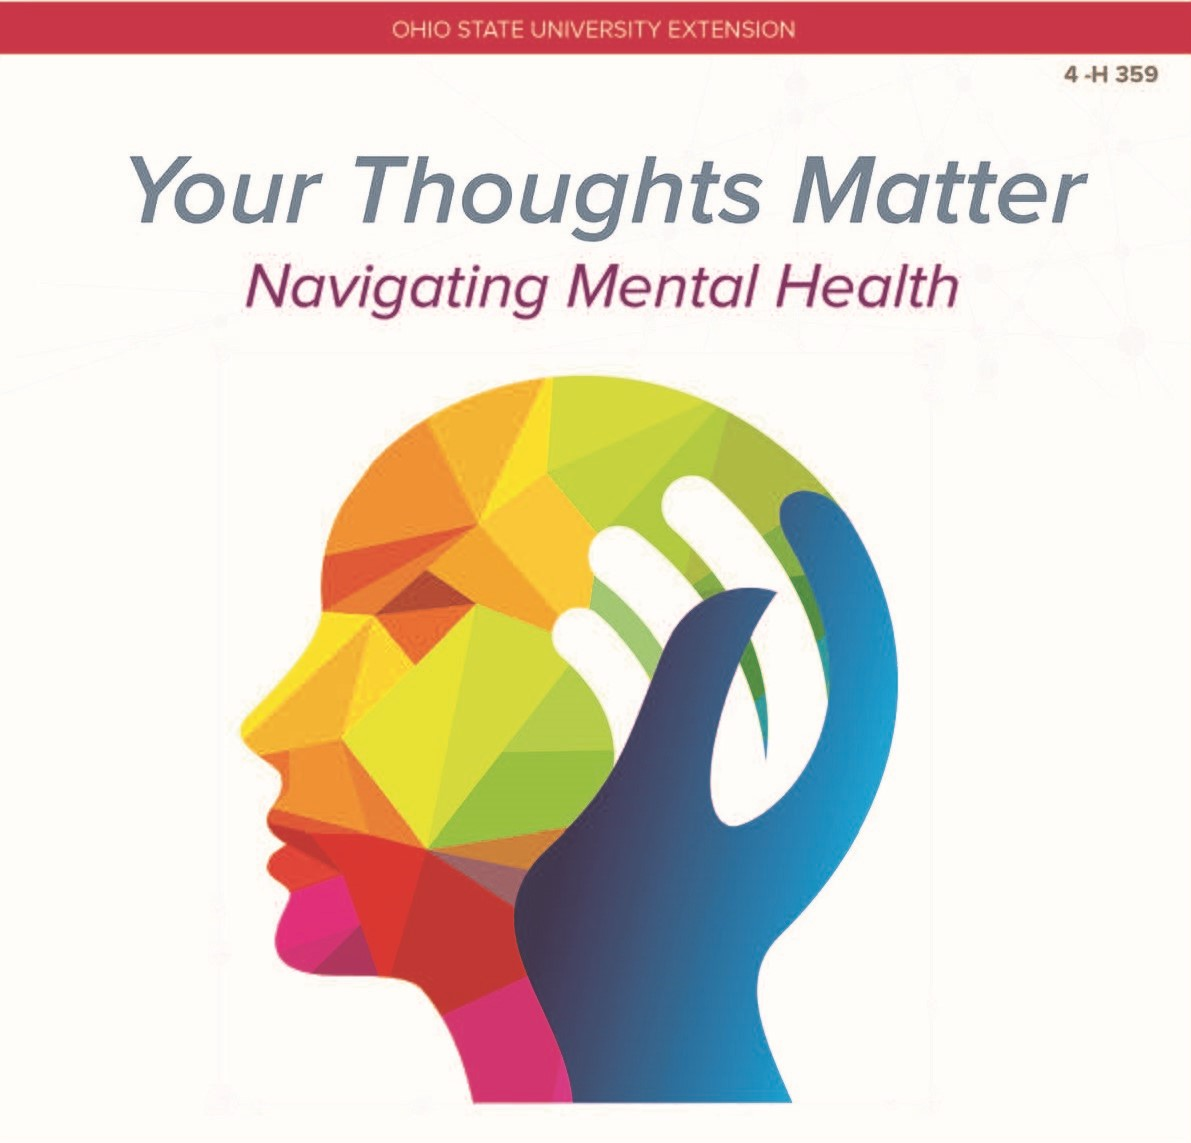 Your Thoughts Matter Navigating Mental Health with rainbow graphic of head from side profile